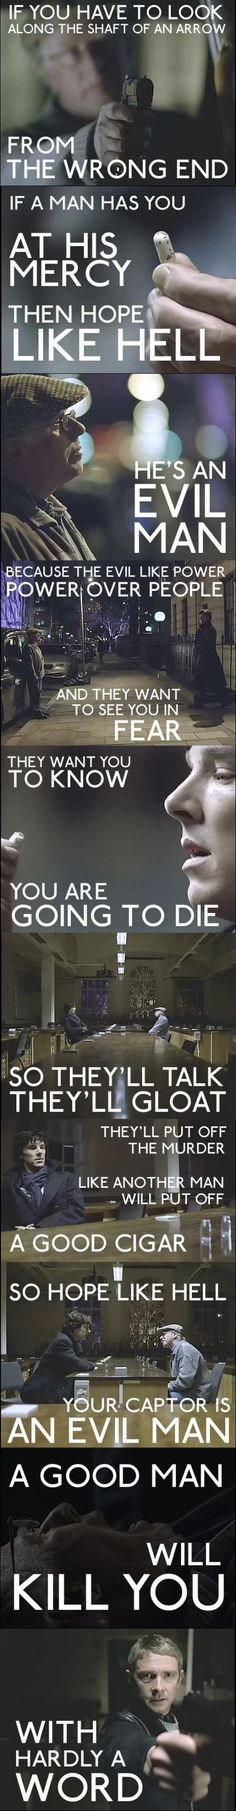 For the Sherlock fans out there...